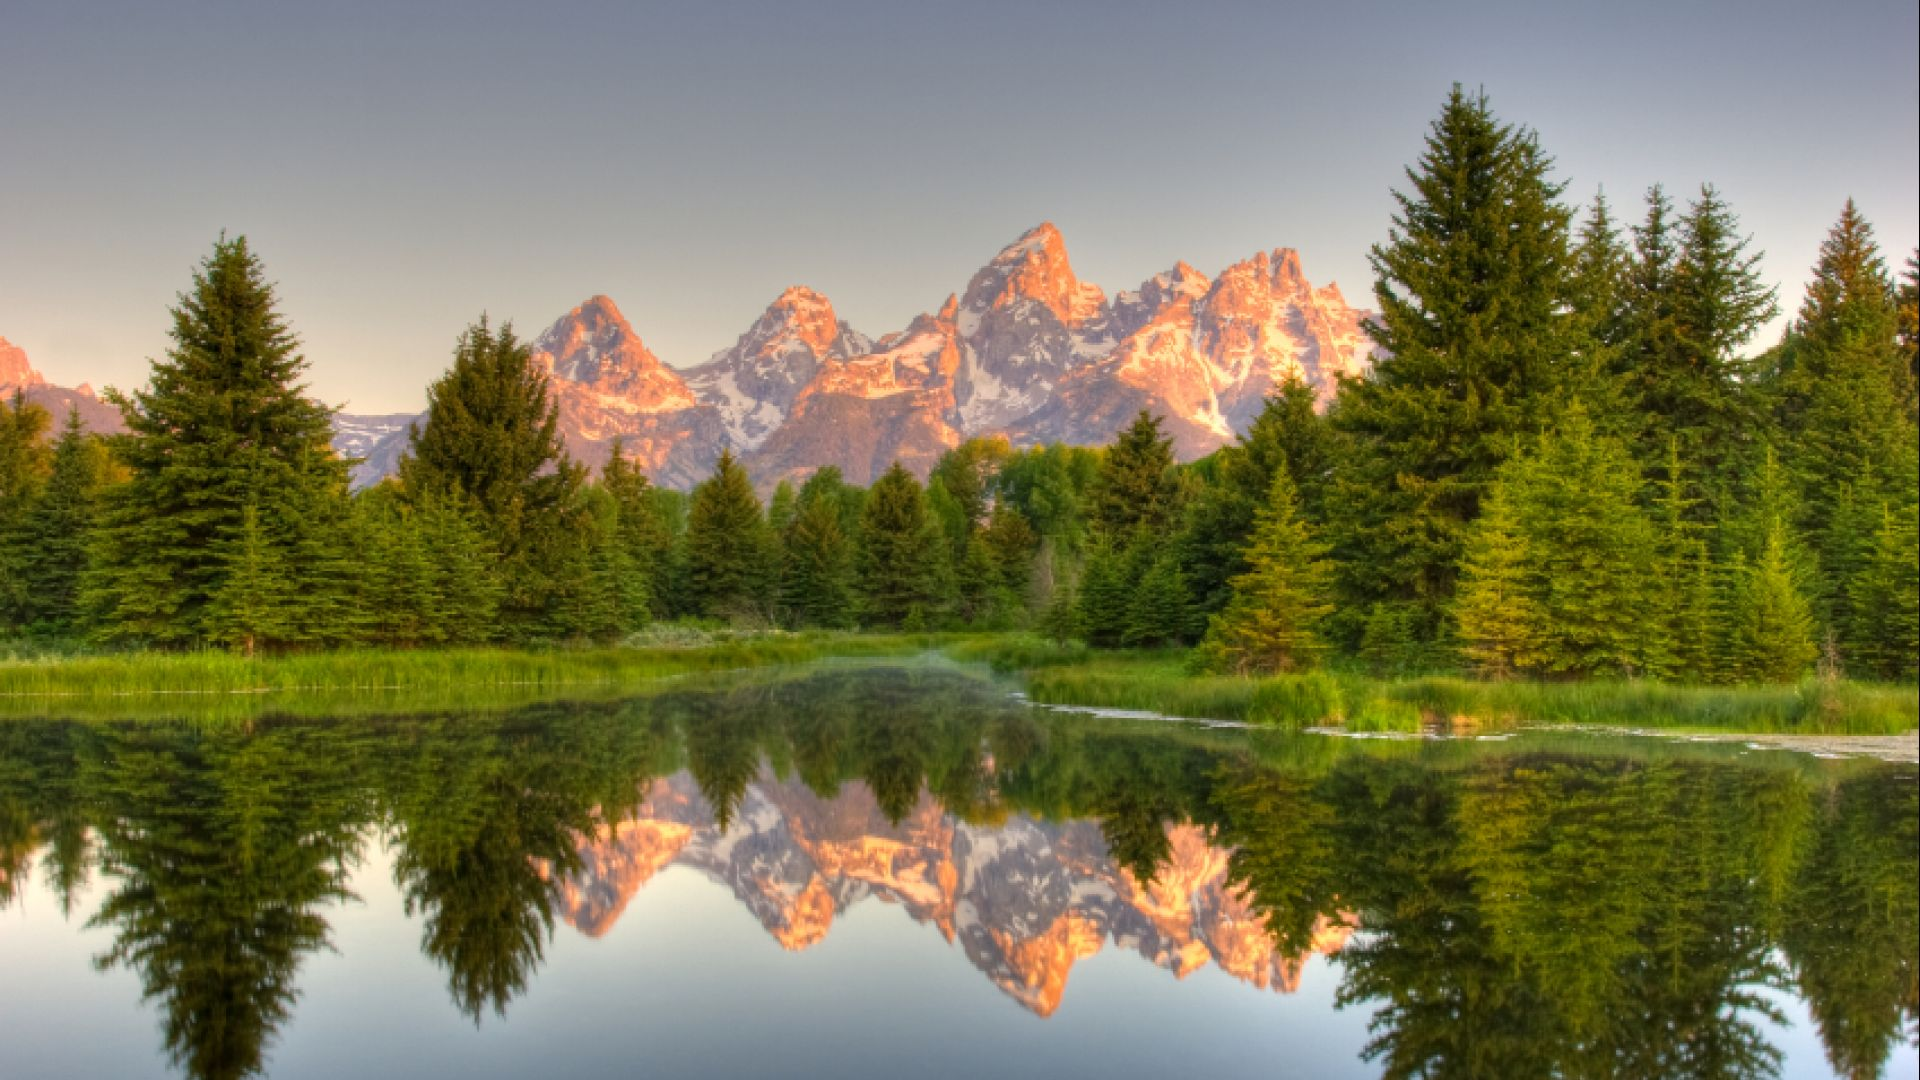 Call or email us today to learn more about travel to Jackson Hole.